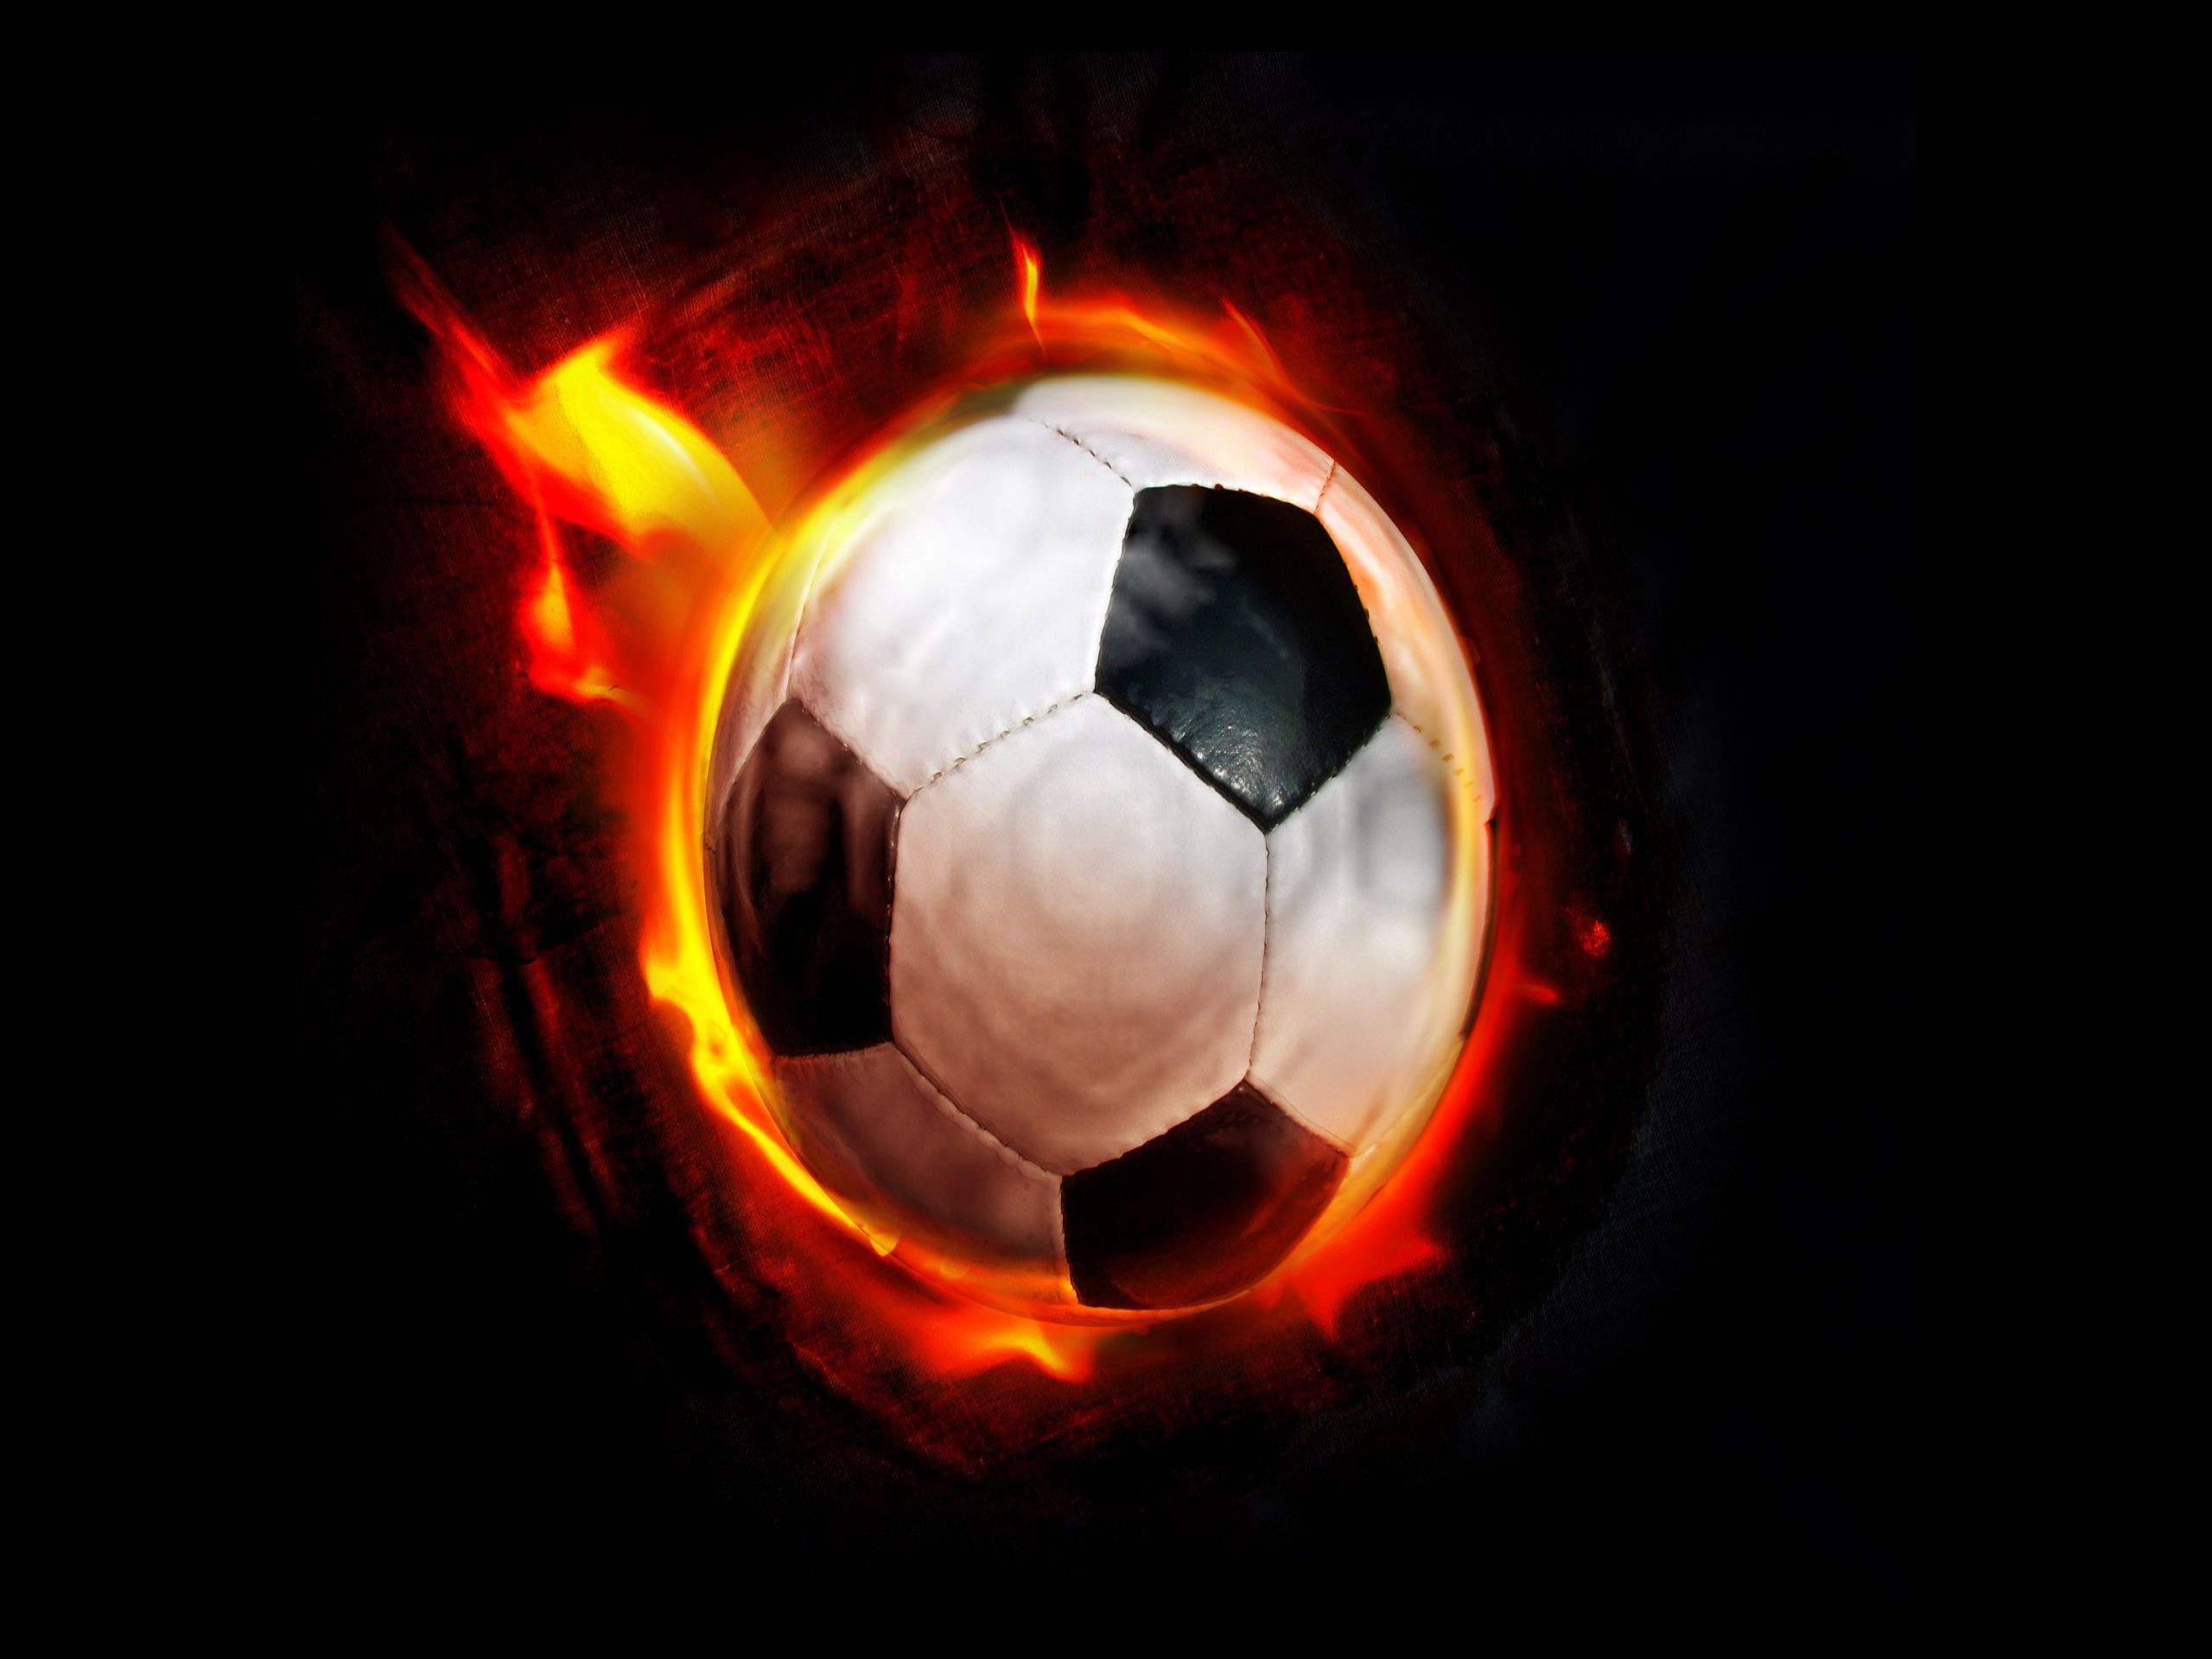 Football Free Wallpaper Widescreen Http Www Wallpapersoccer Com Football Free Wallpaper Widescreen Html Soccer Ball Football Ball Soccer